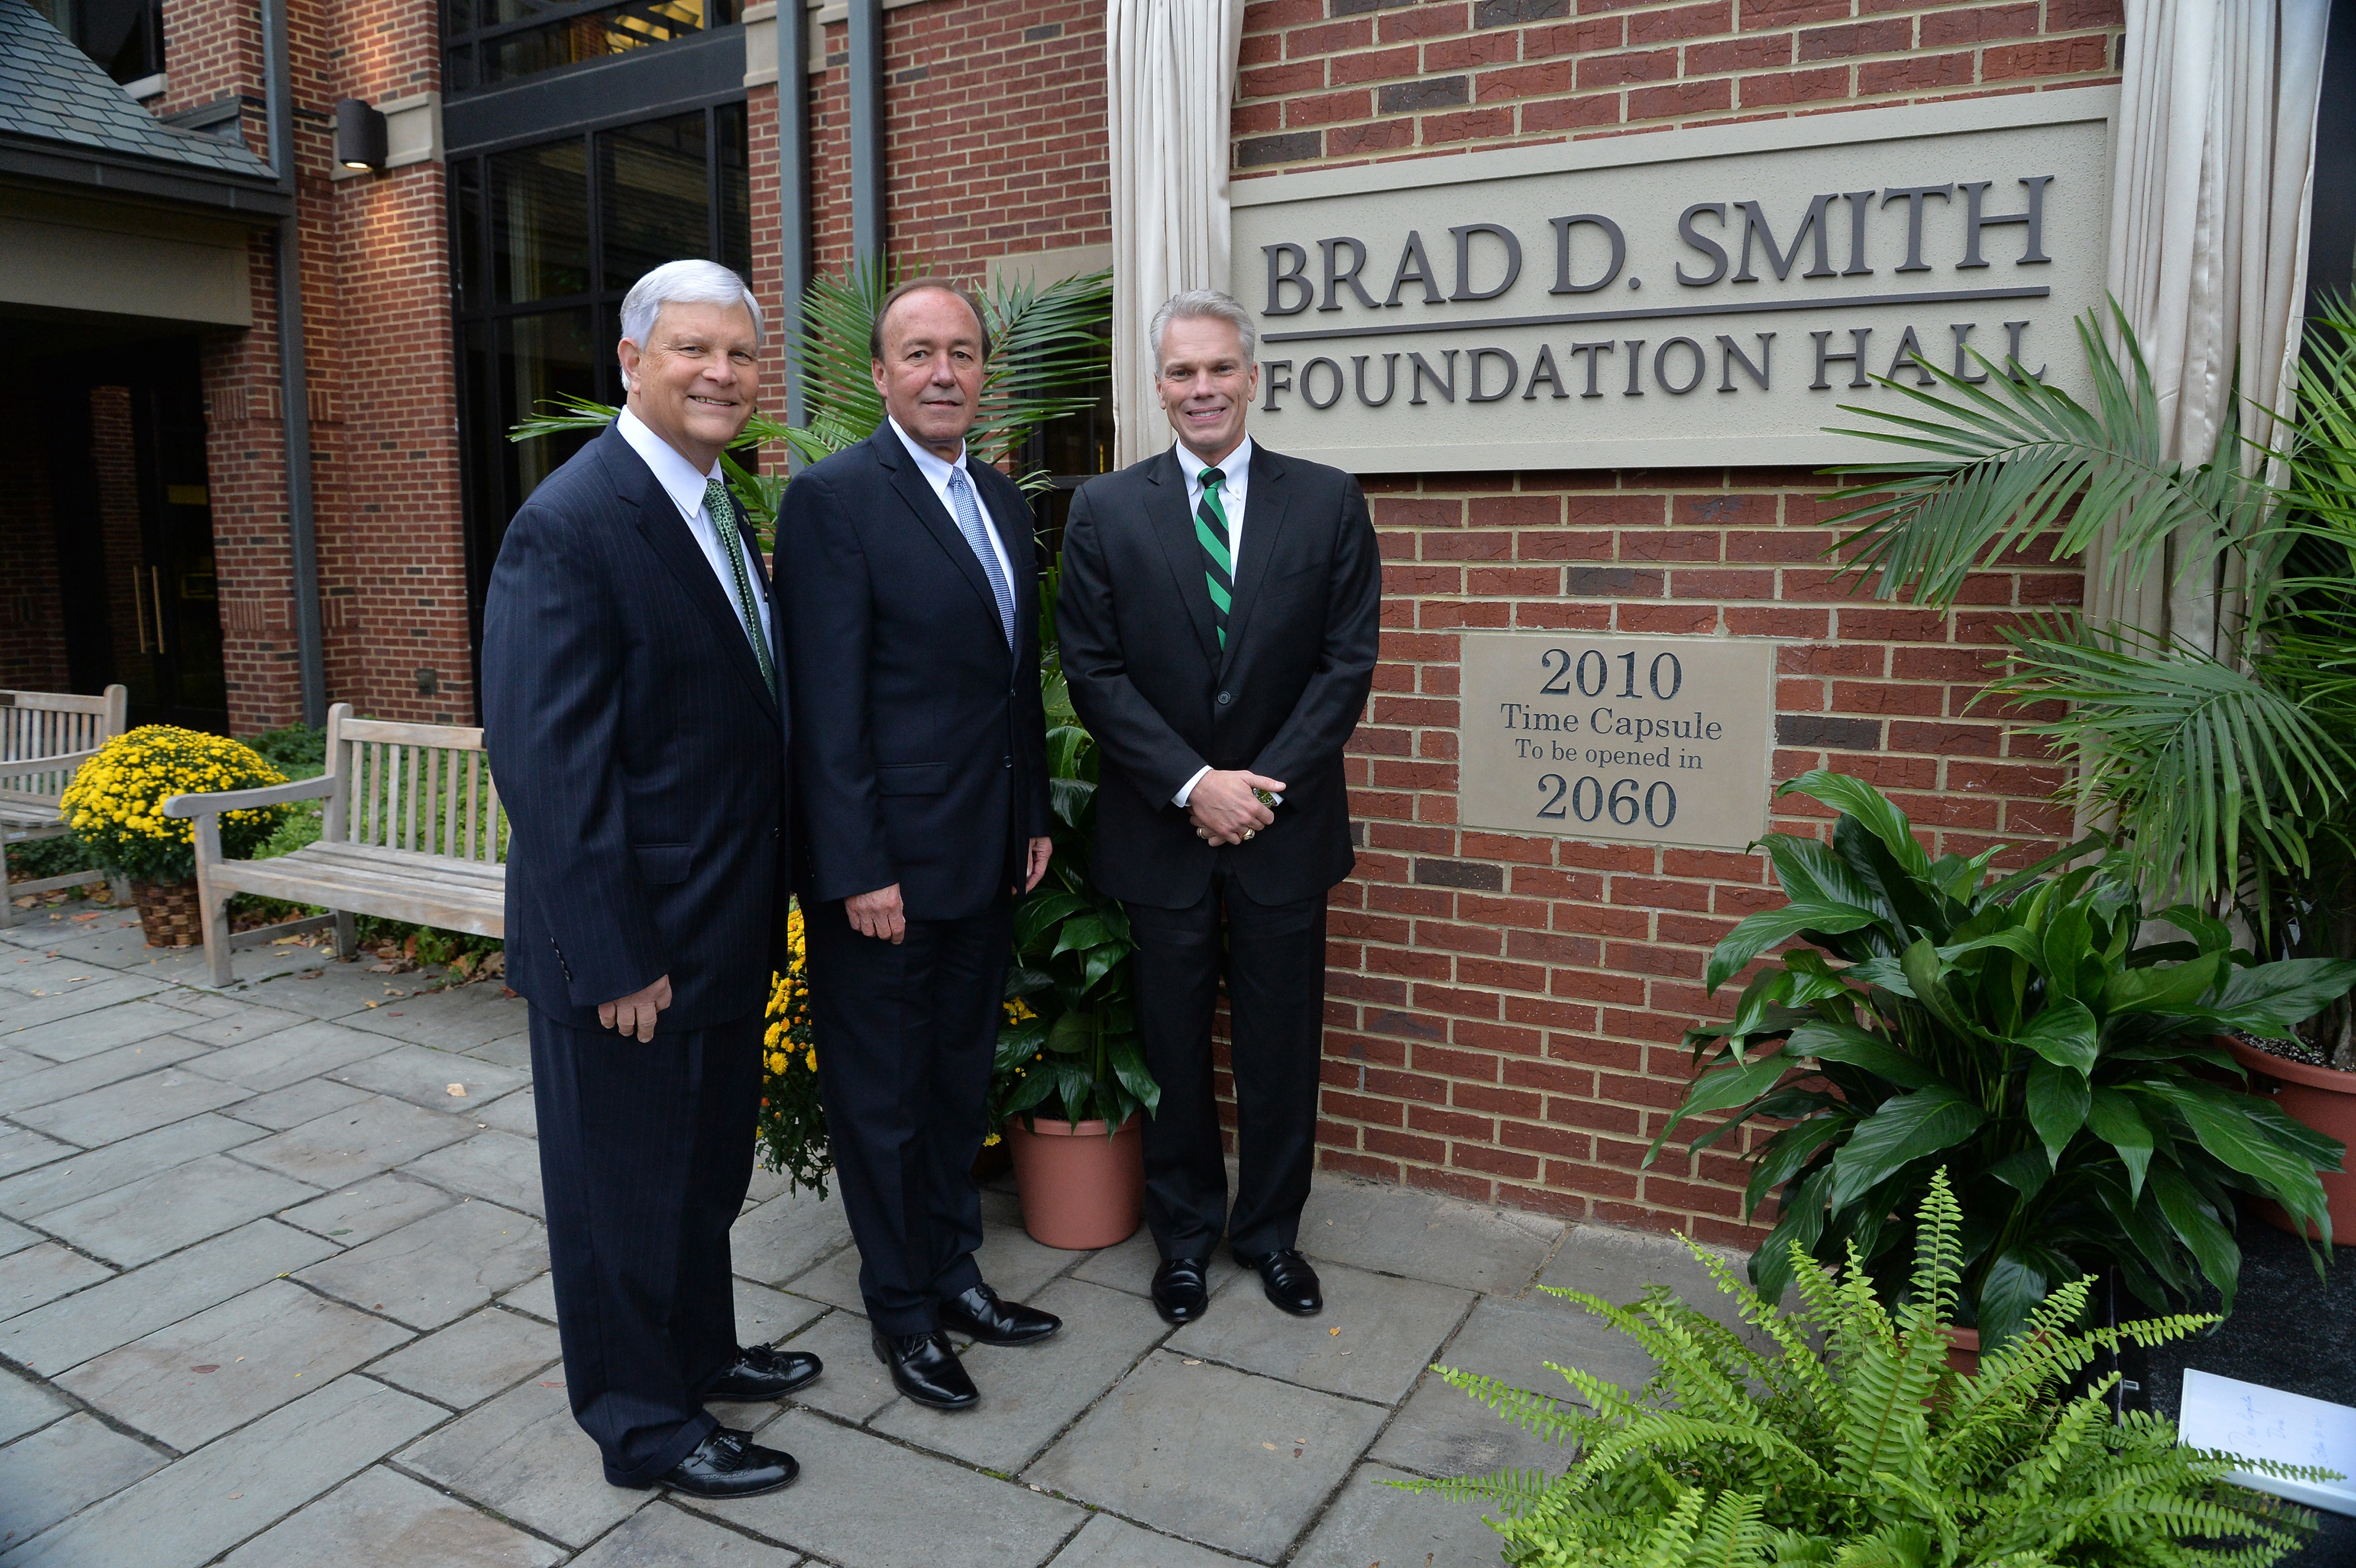 Brad Smith at the dedication ceremony of the foundation hall.